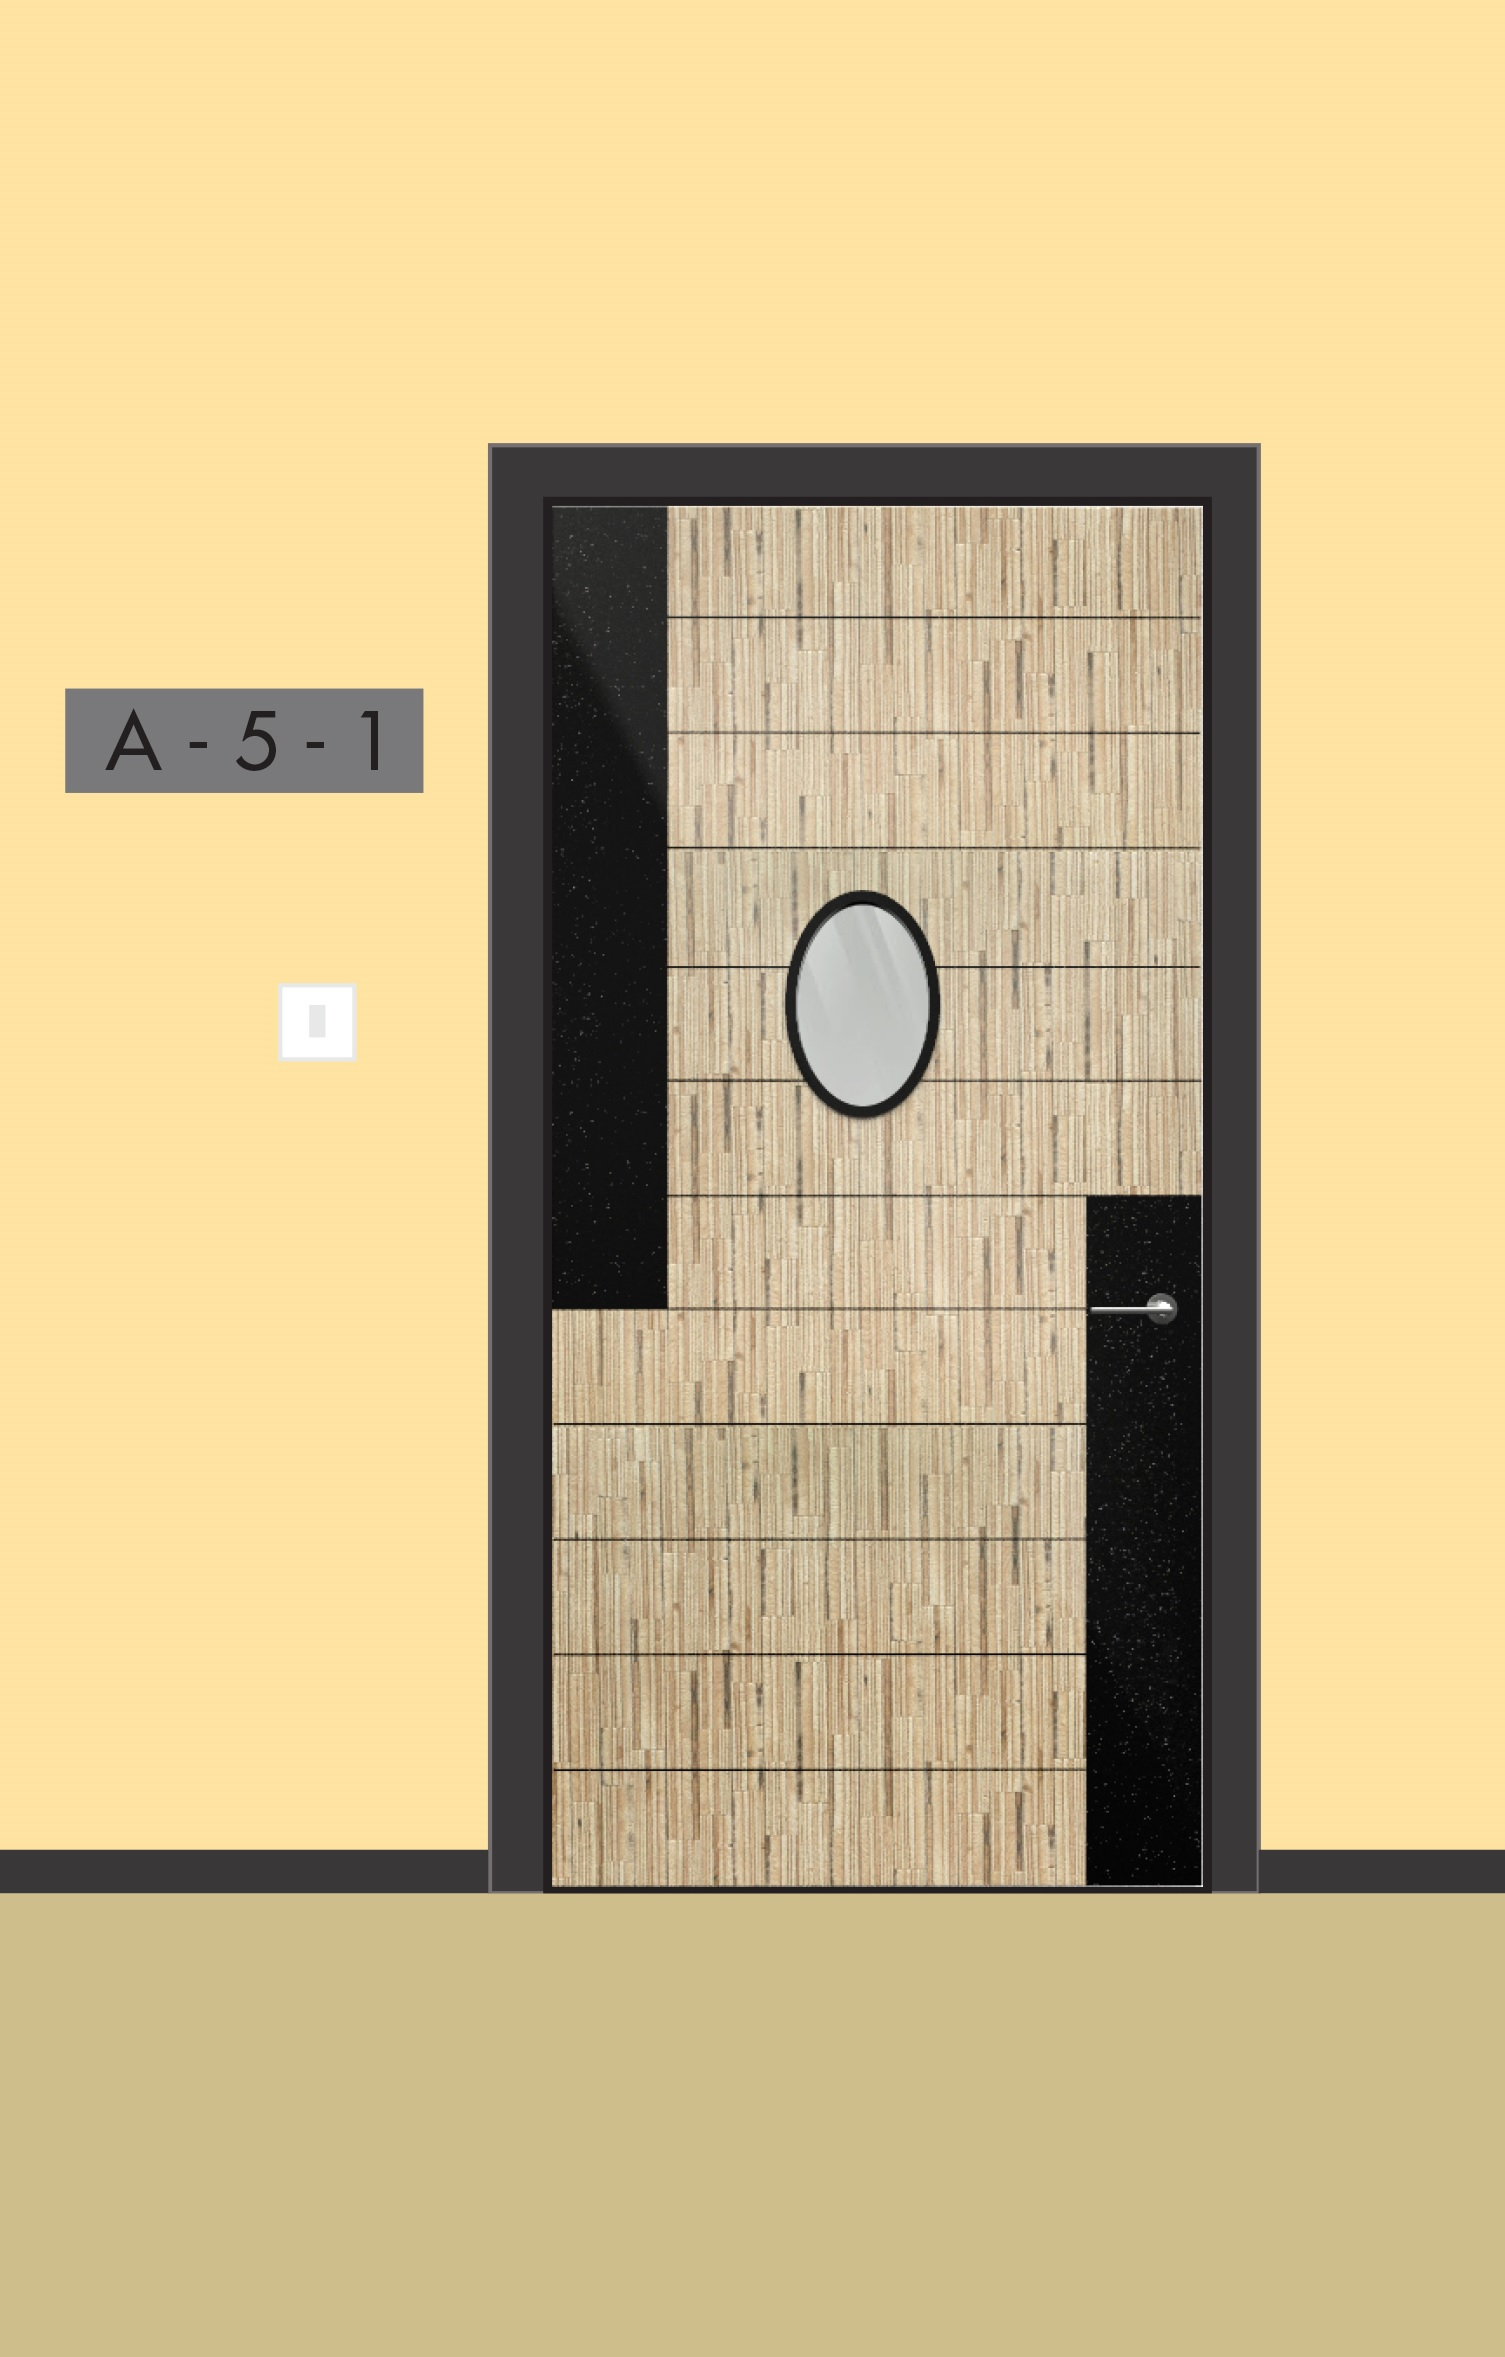 frp and openings minute available fibreglass door architectural corrim frames through fire offers company rated doors polymer rse with polyfire reinforced ul ratings